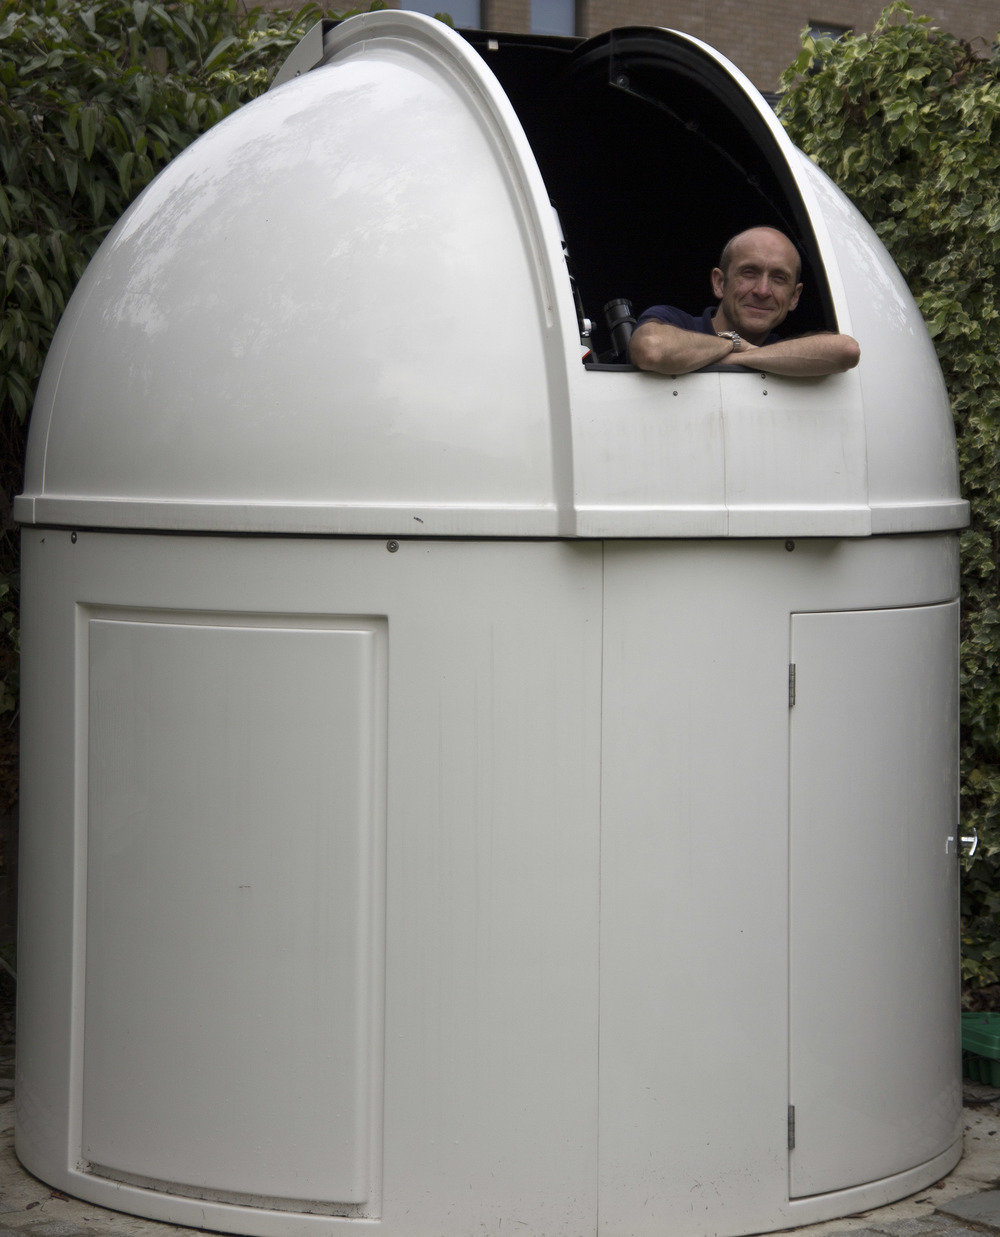 Me in my back garden observatory, Wimbledon June 2016